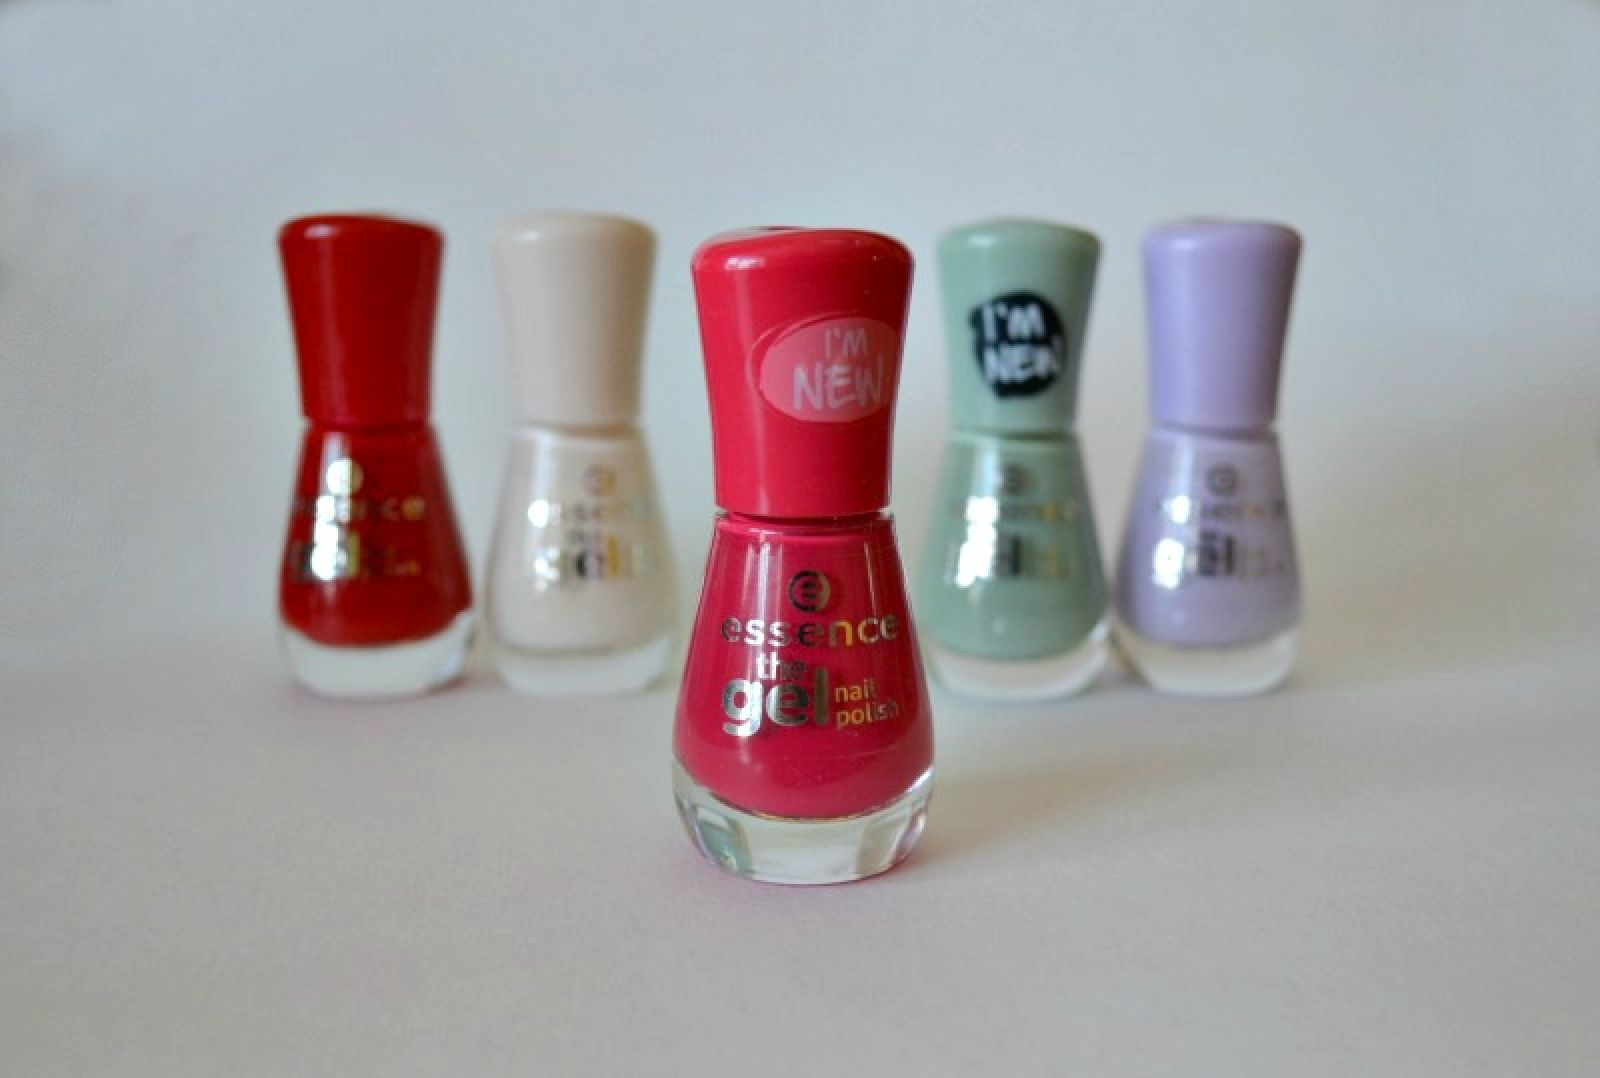 Essence The Gel nail polish 92 Red Carpet?